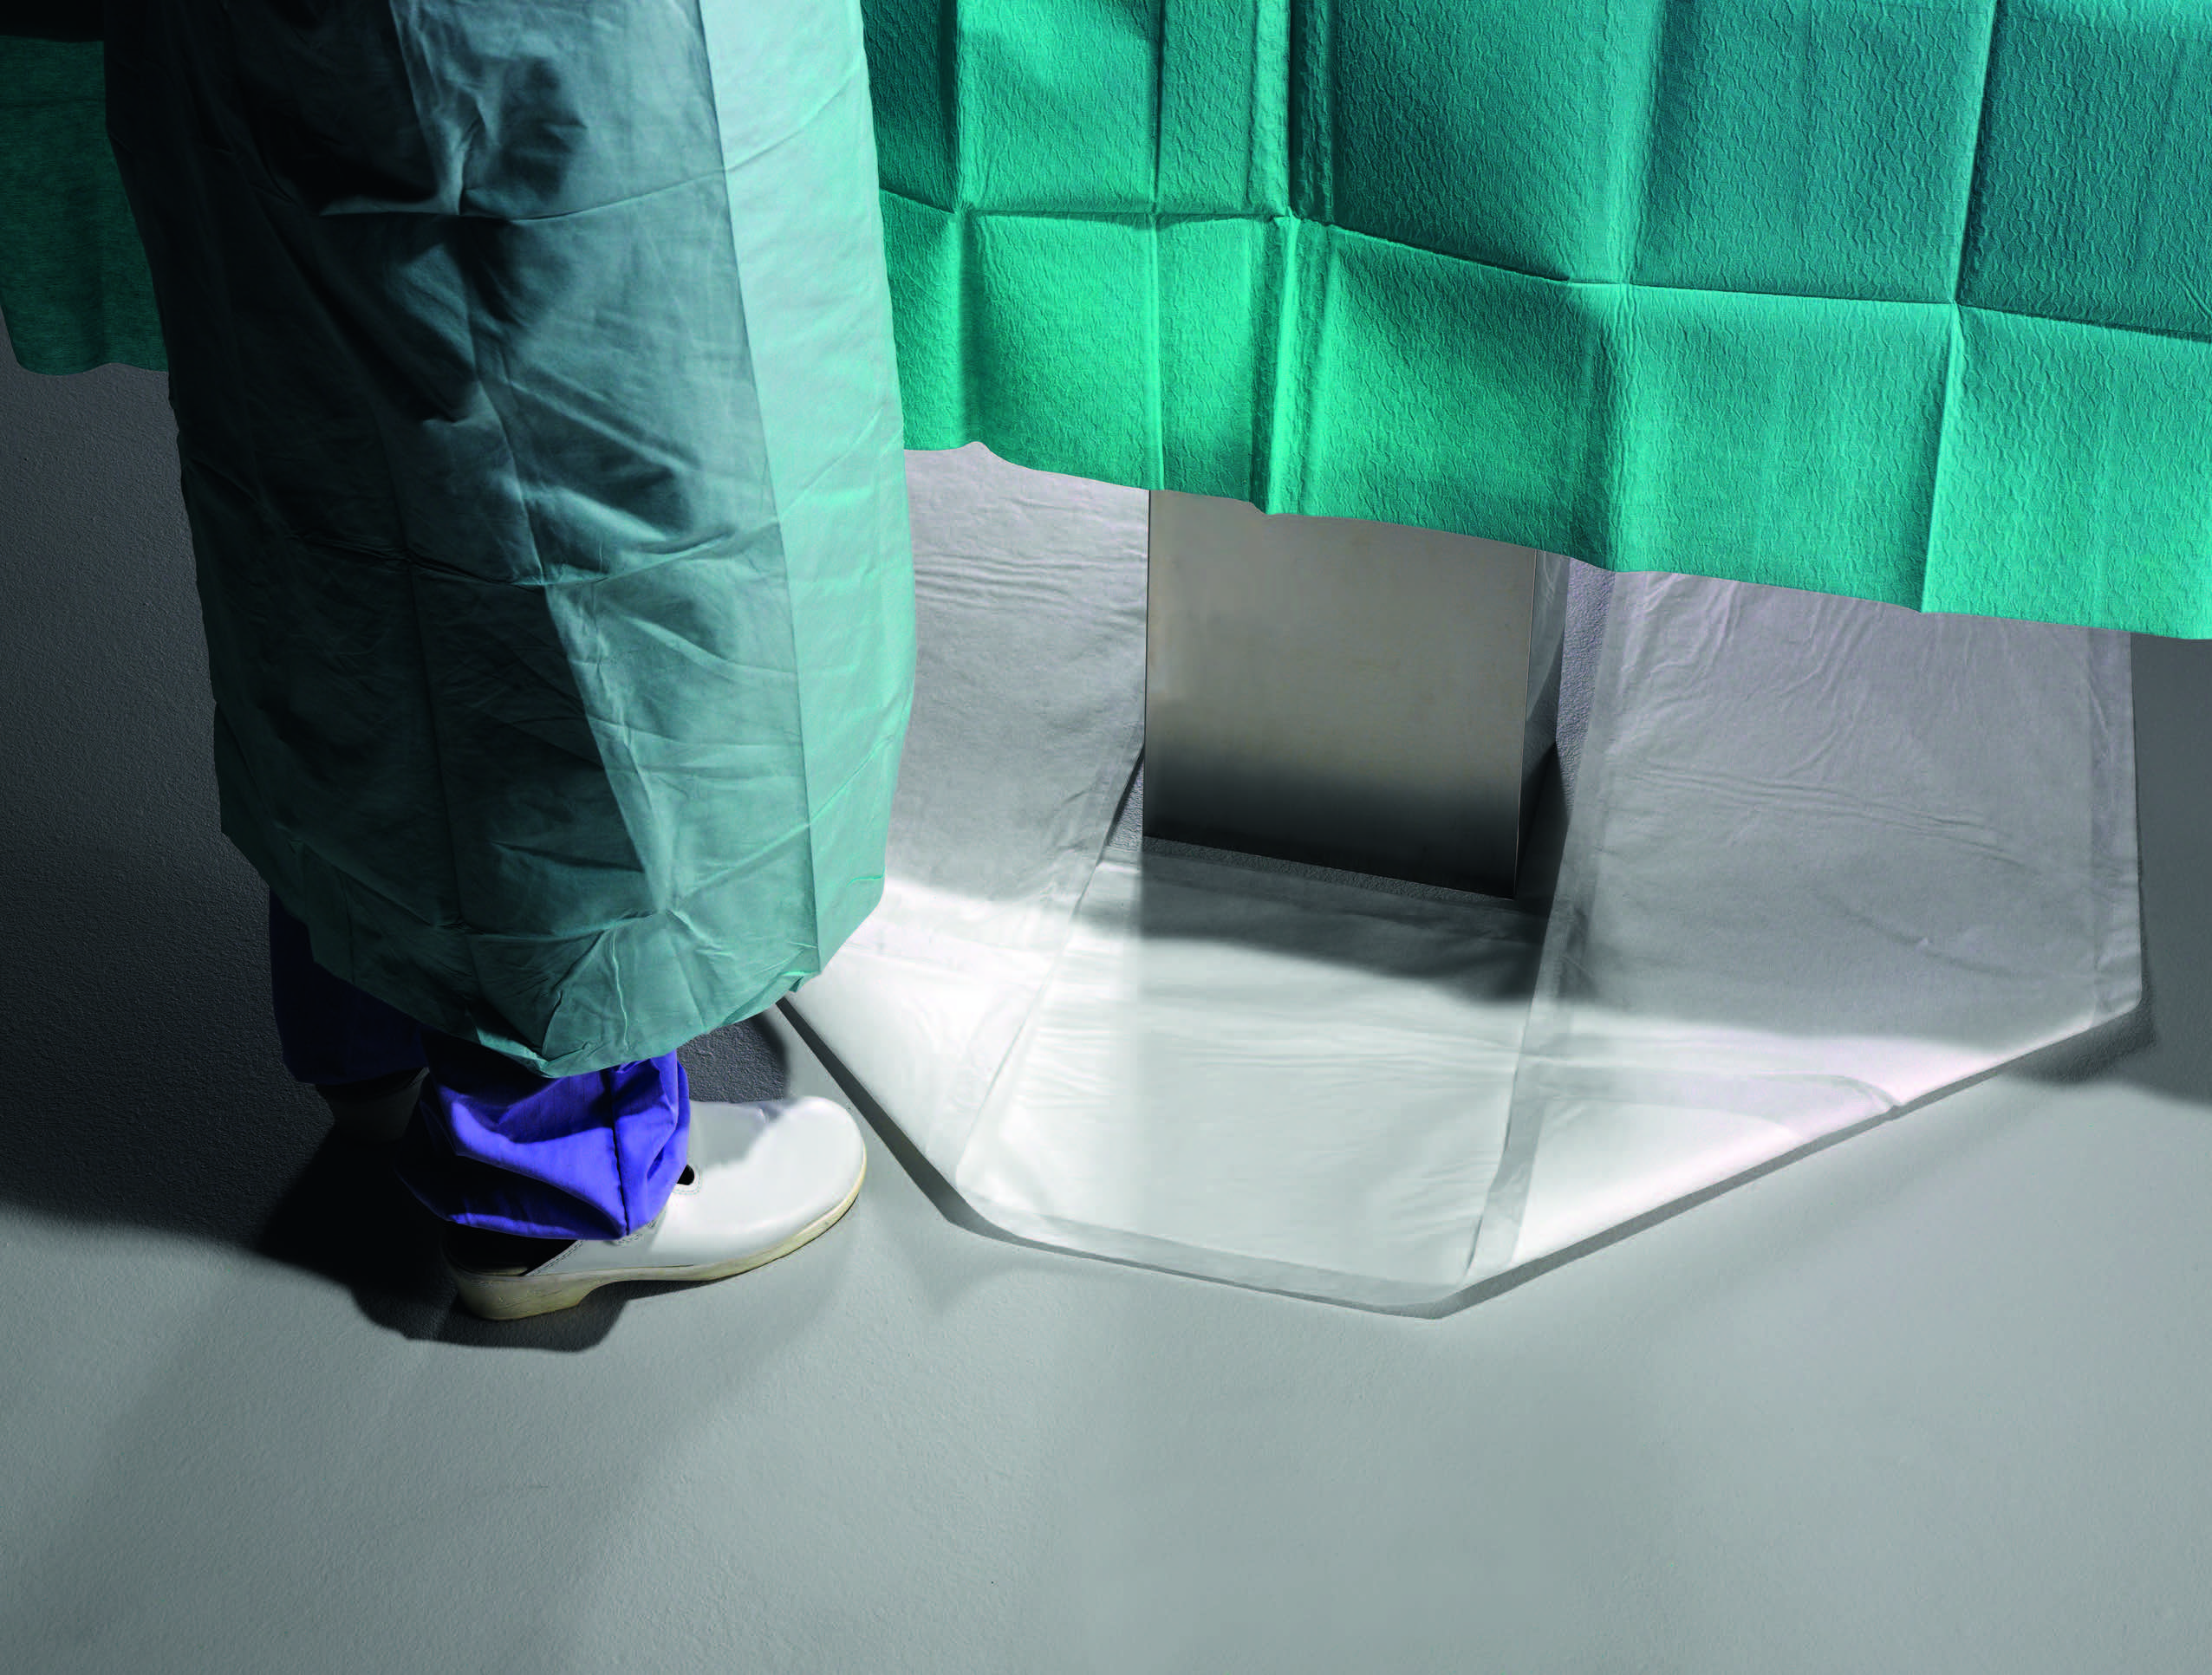 Action Products Offers Table-length Fluid Management Mat